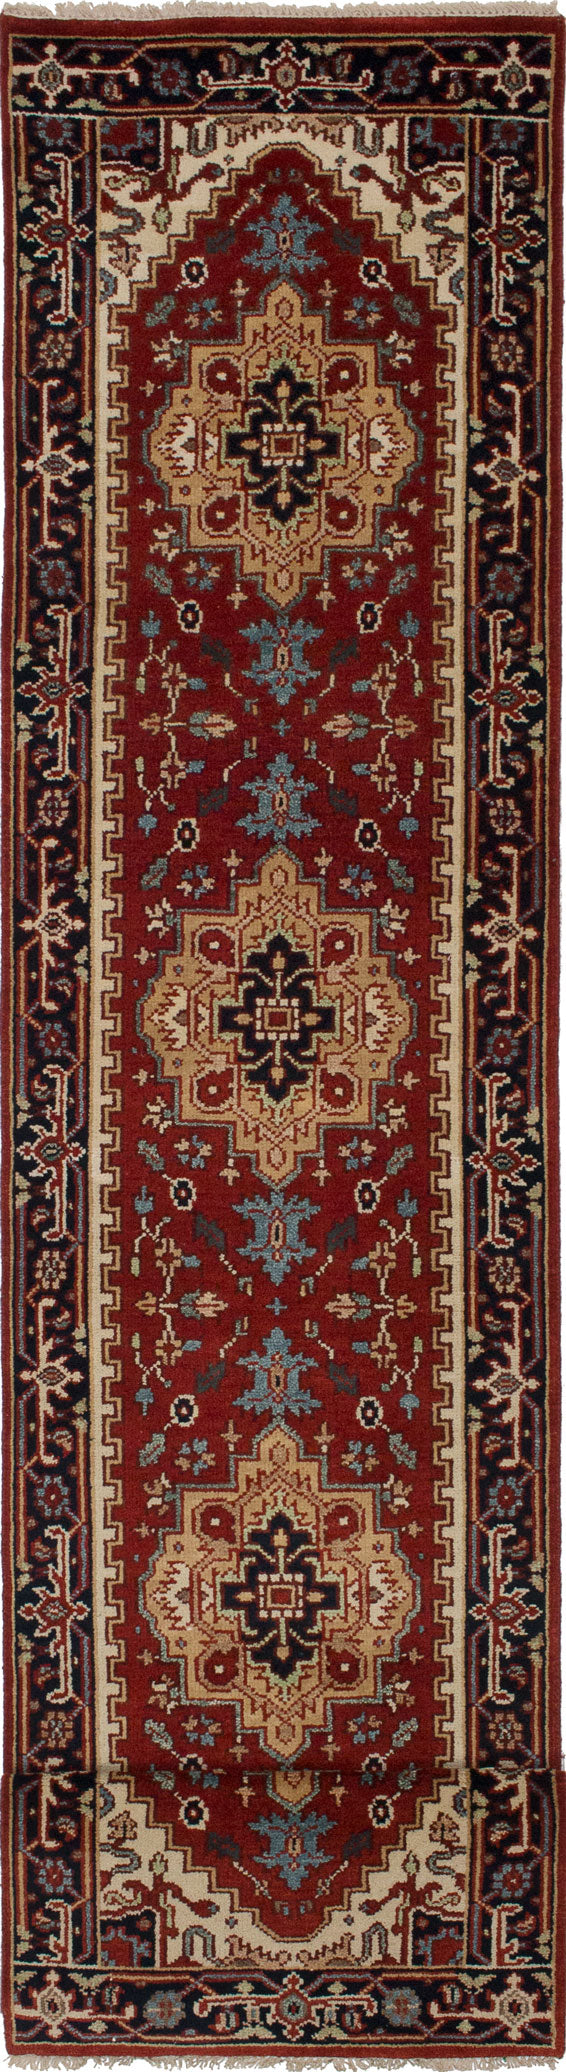 "Hand-knotted Indian Floral  Traditional Serapi-Heritage Runner rug  Dark Copper 2'6 x 11'8"" """